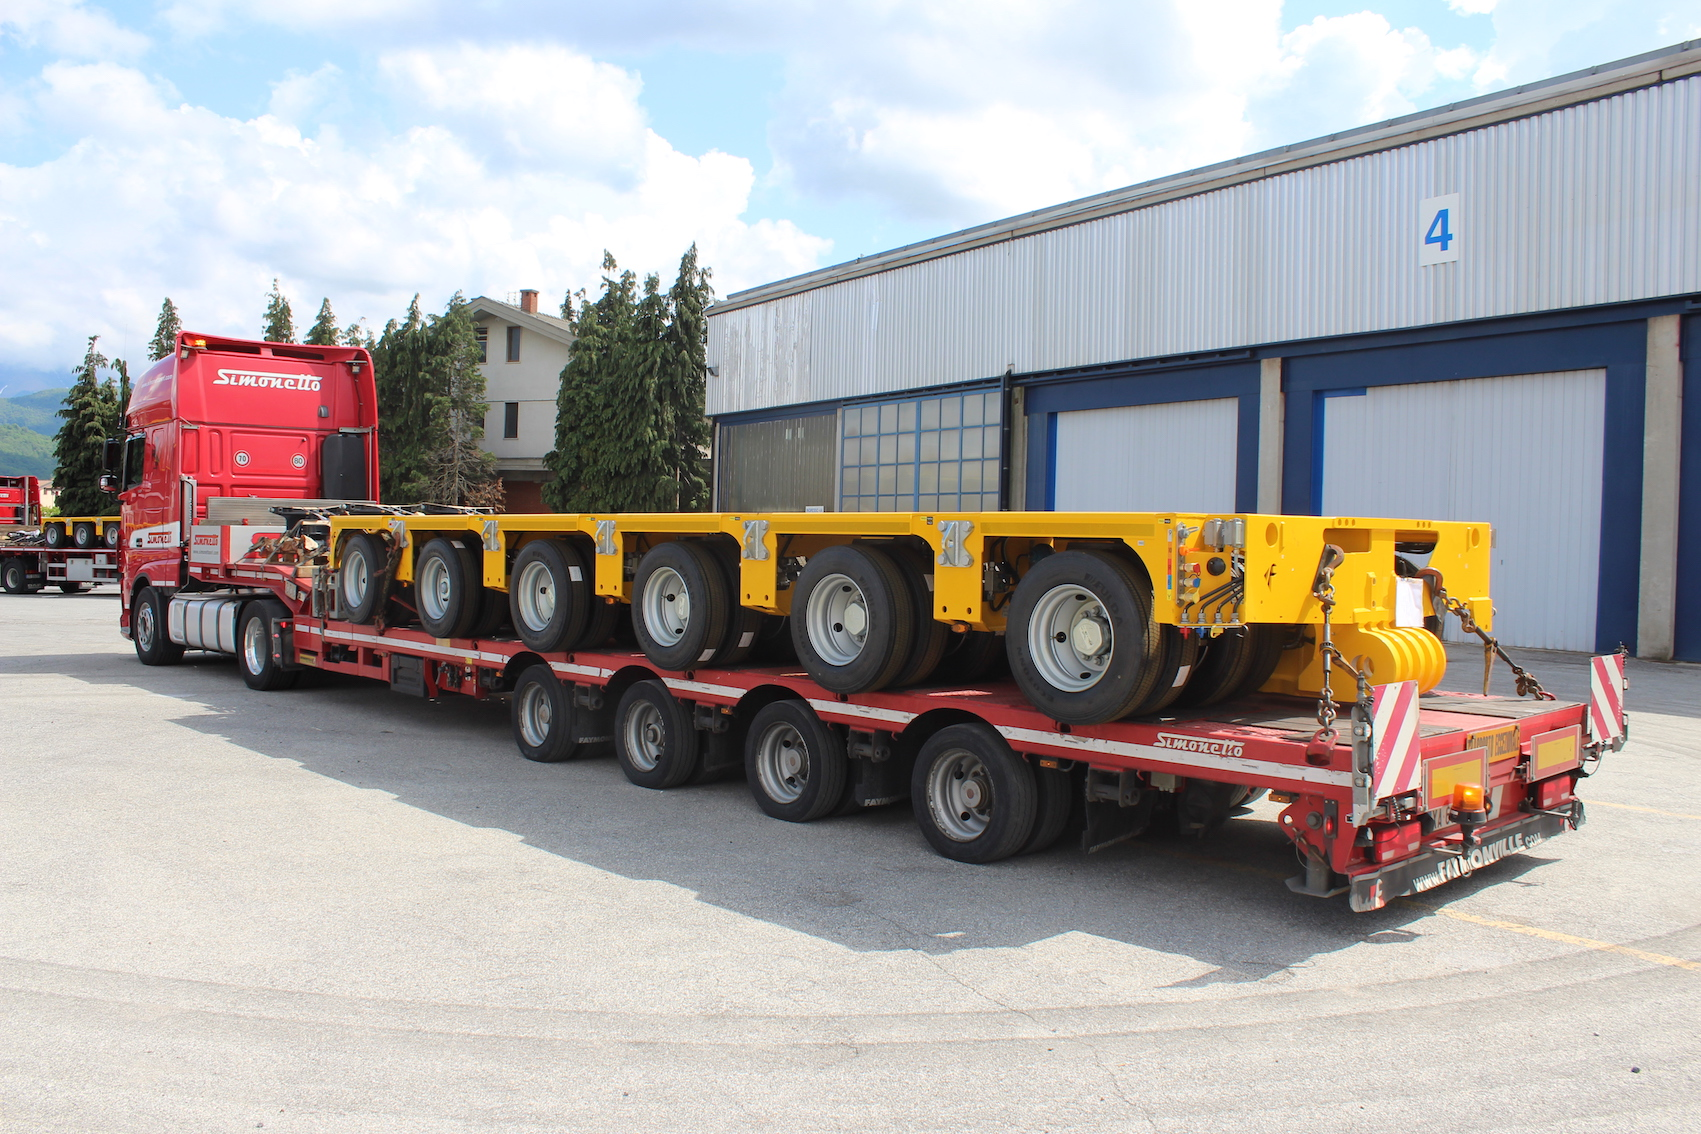 108 MGSL axle lines from Cometto to Hareket (2) - copie